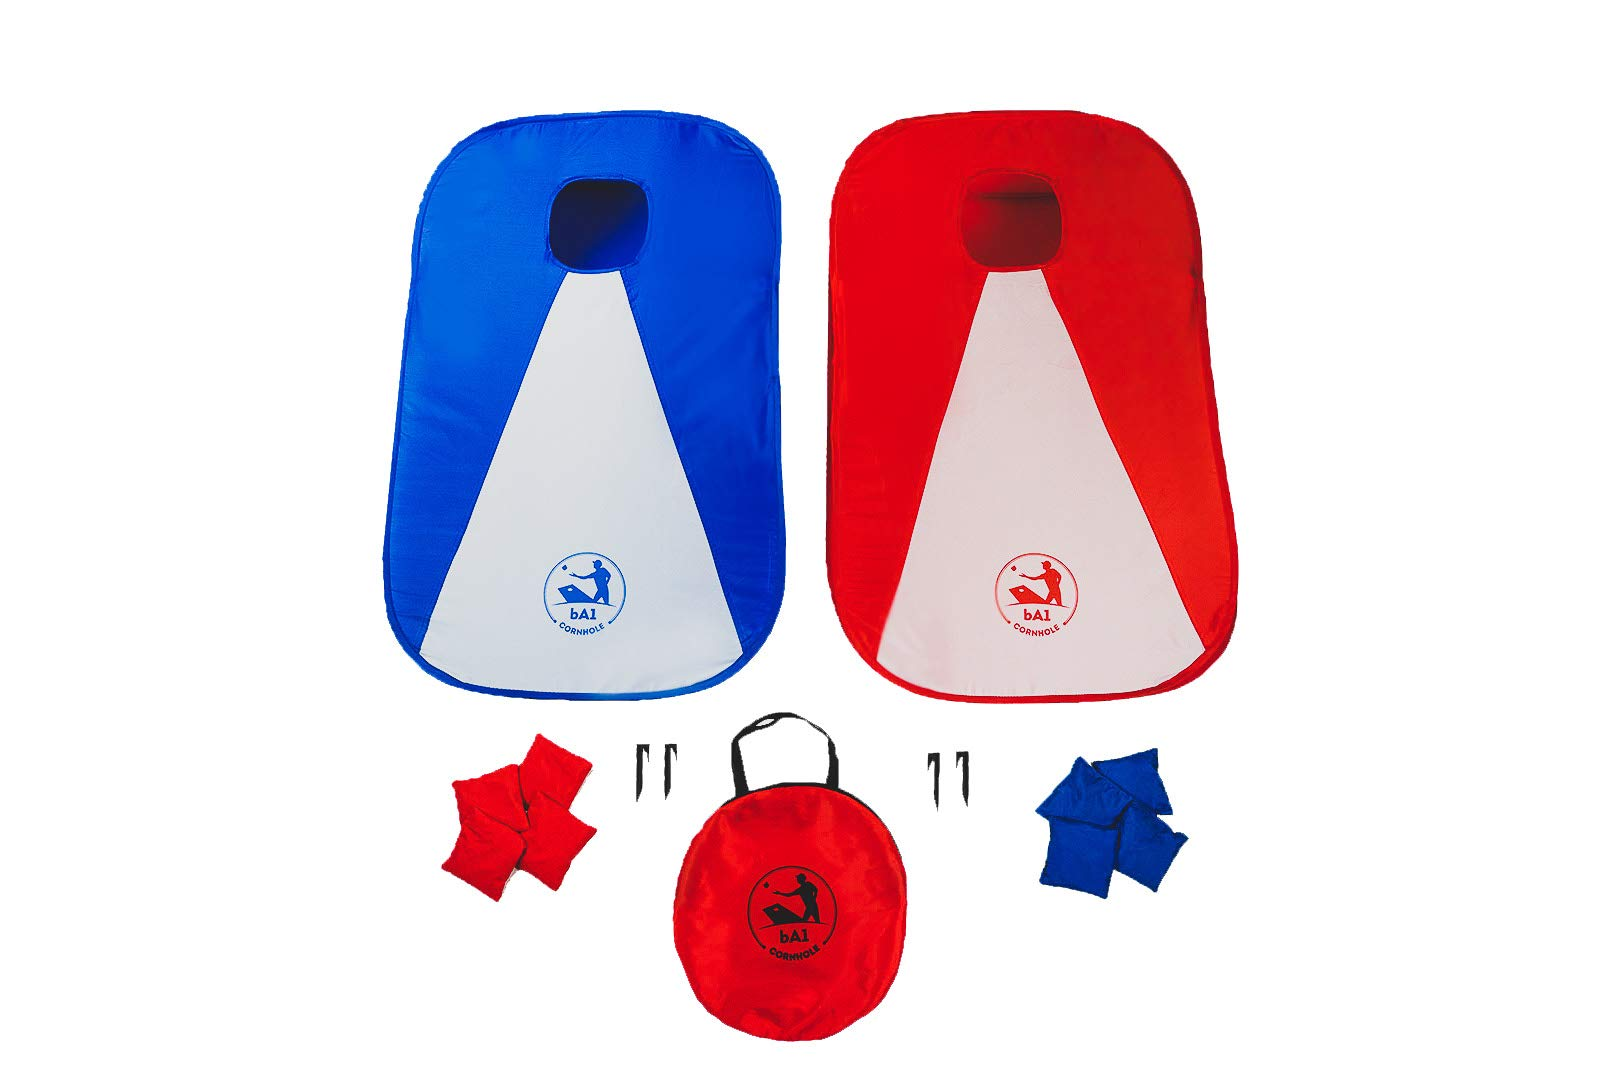 bA1 Cornhole - All Weather Collapsible Portable Cornhole Game Set - 2 Boards + 8 Beanbags + Carrying Case + Stakes (3' x 2') Now Play Anywhere, Anytime, even on the Go - Indoor or Outdoor!